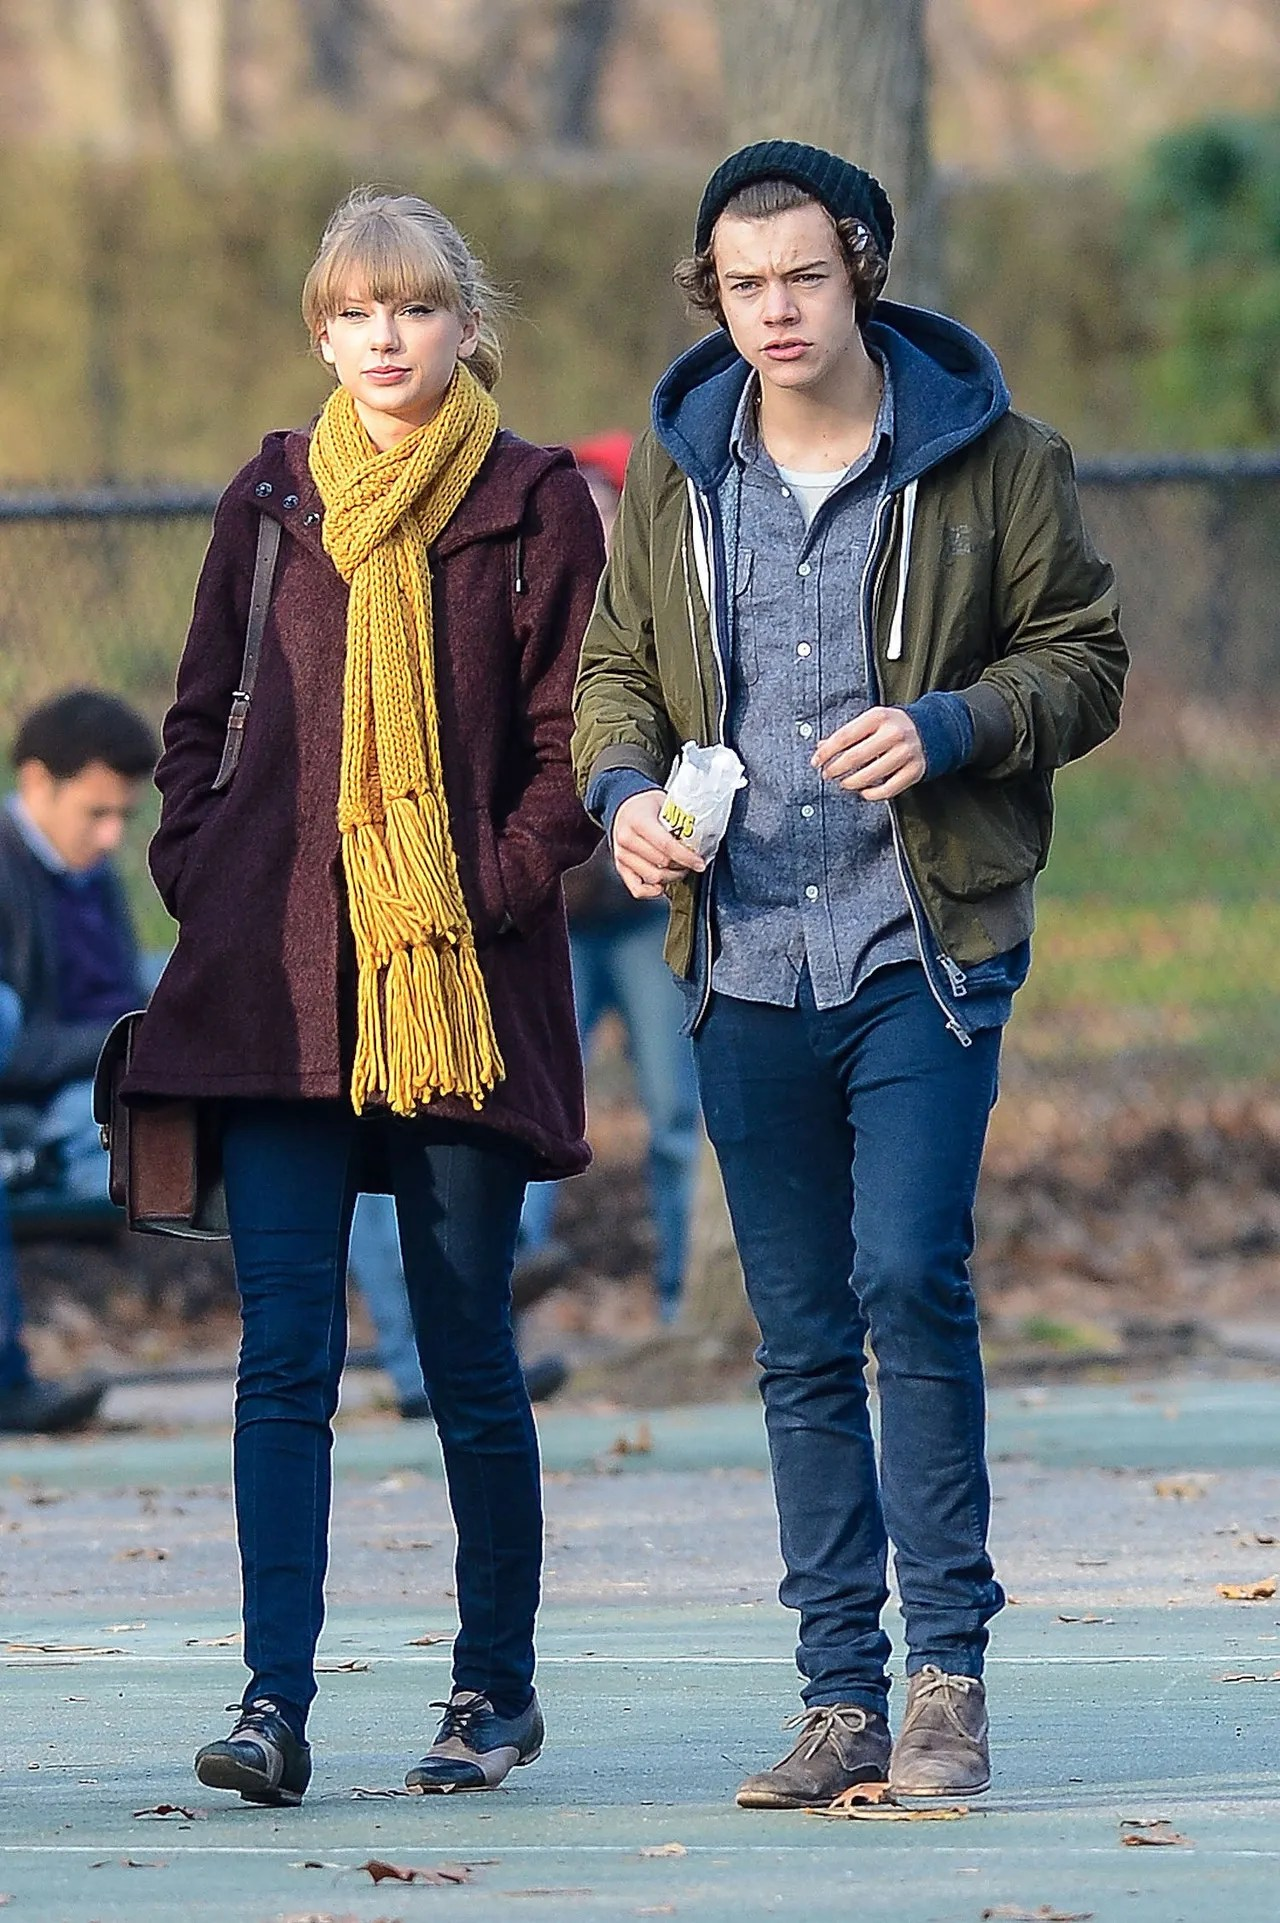 Cute Love Couple Wallpaper For Whatsapp Harry Styles Celebrates His 22nd Birthday With The Most